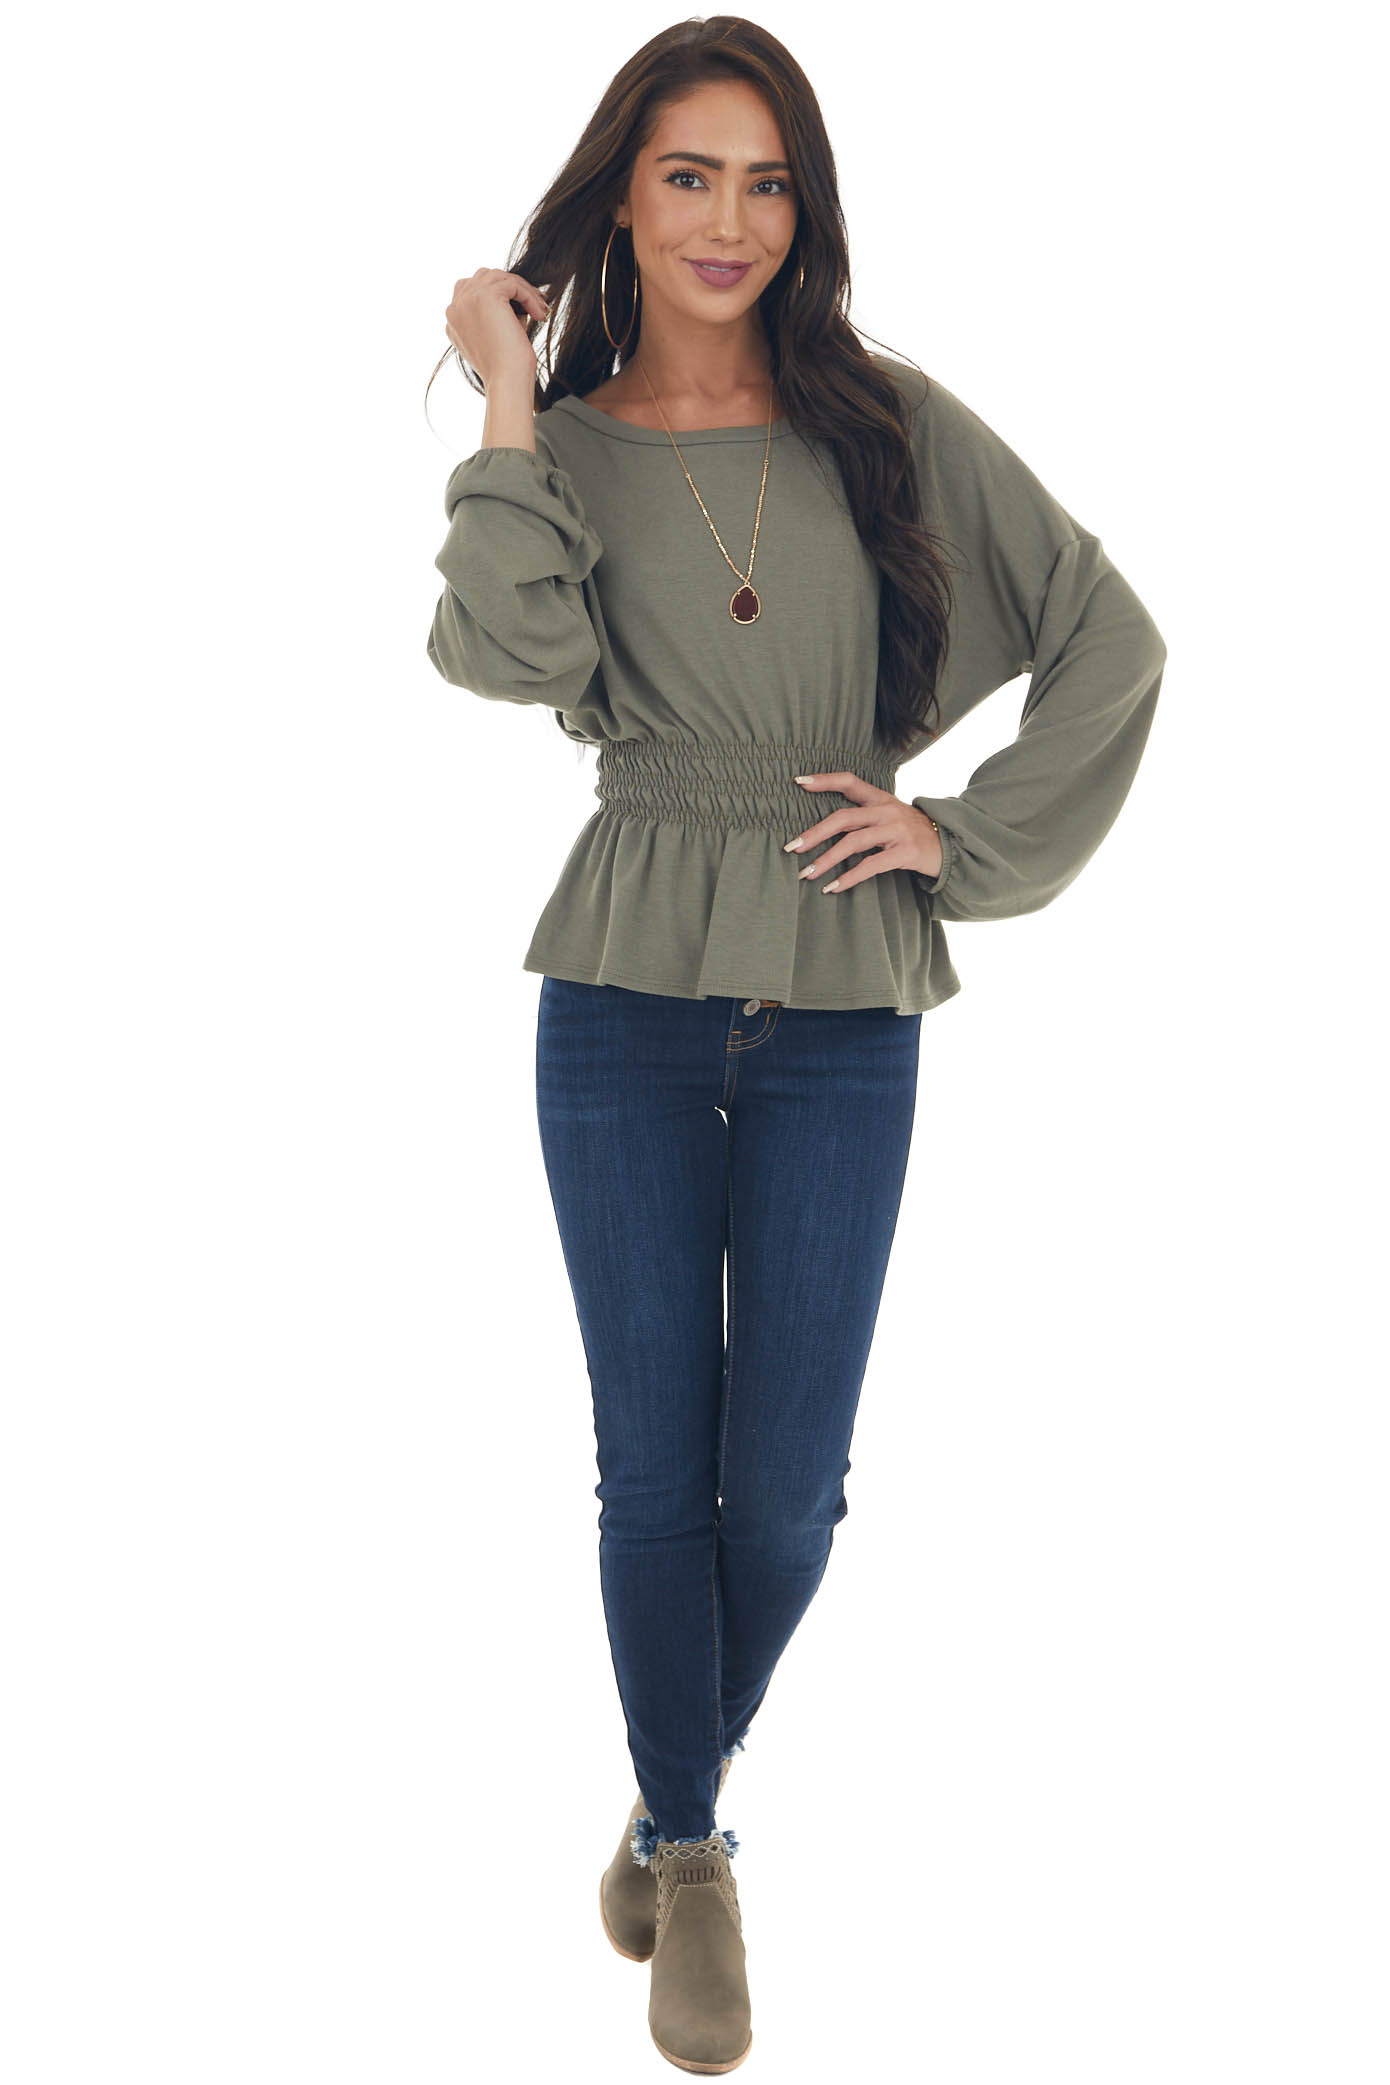 Faded Olive Peplum Knit Top with Long Sleeves